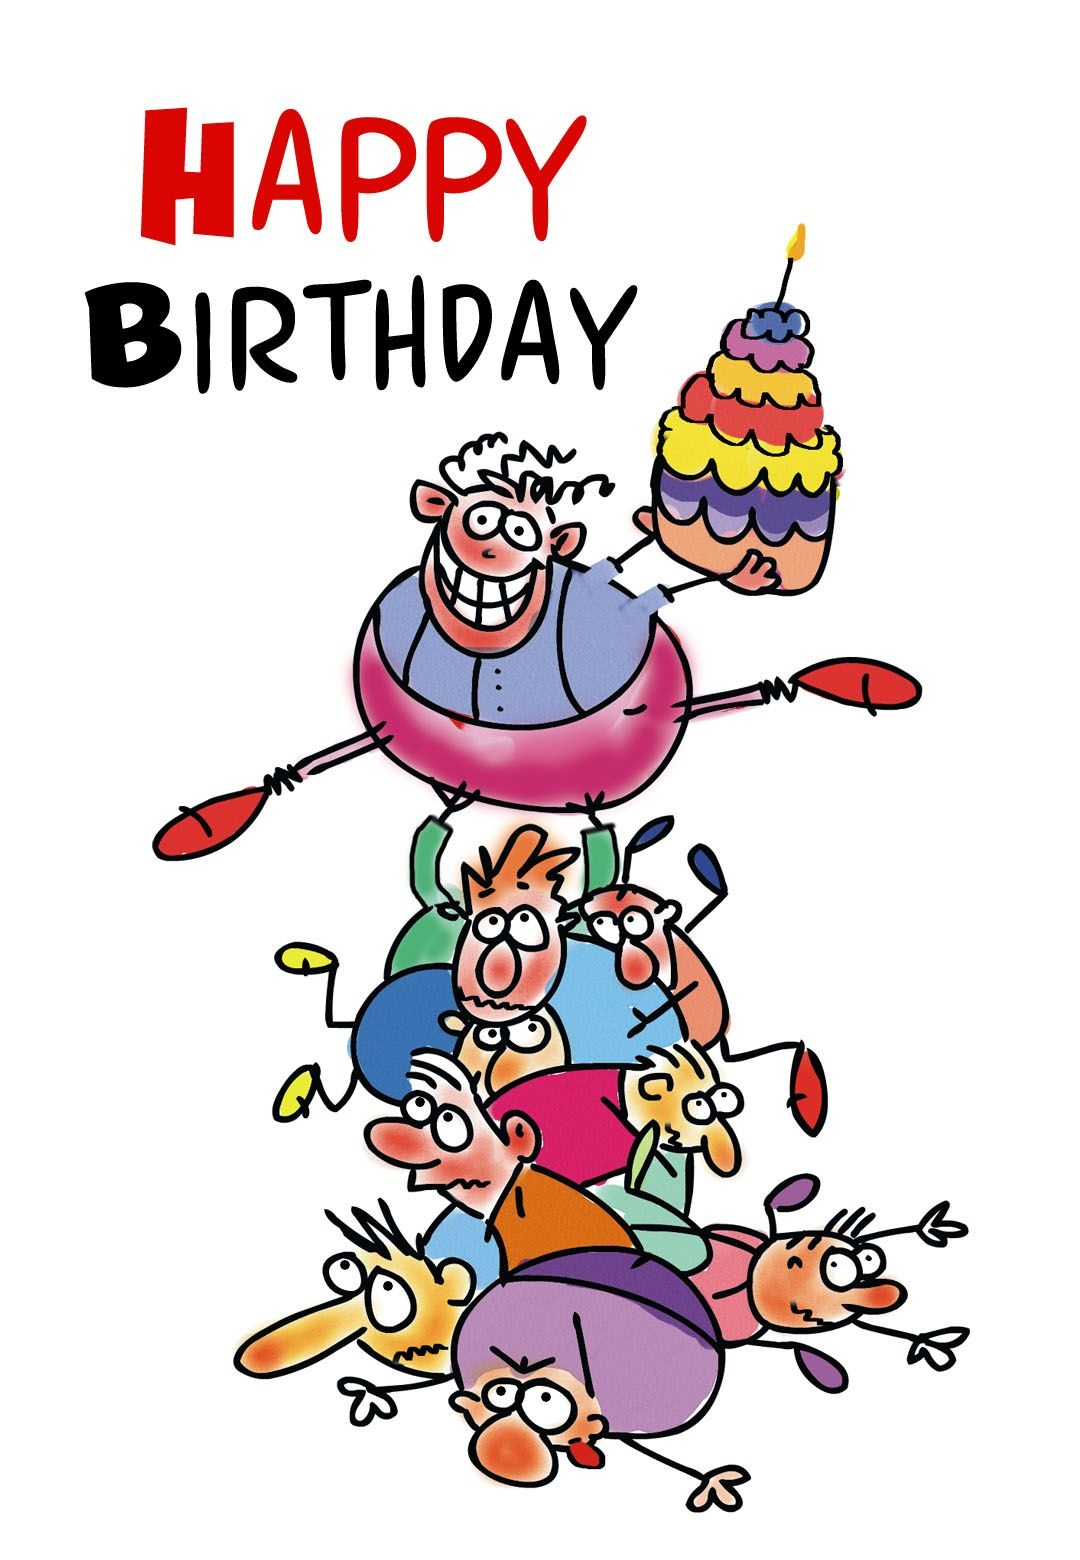 Free Printable Funny Birthday Greeting Card | Gifts To Make | Free - Free Printable Funny Birthday Cards For Adults